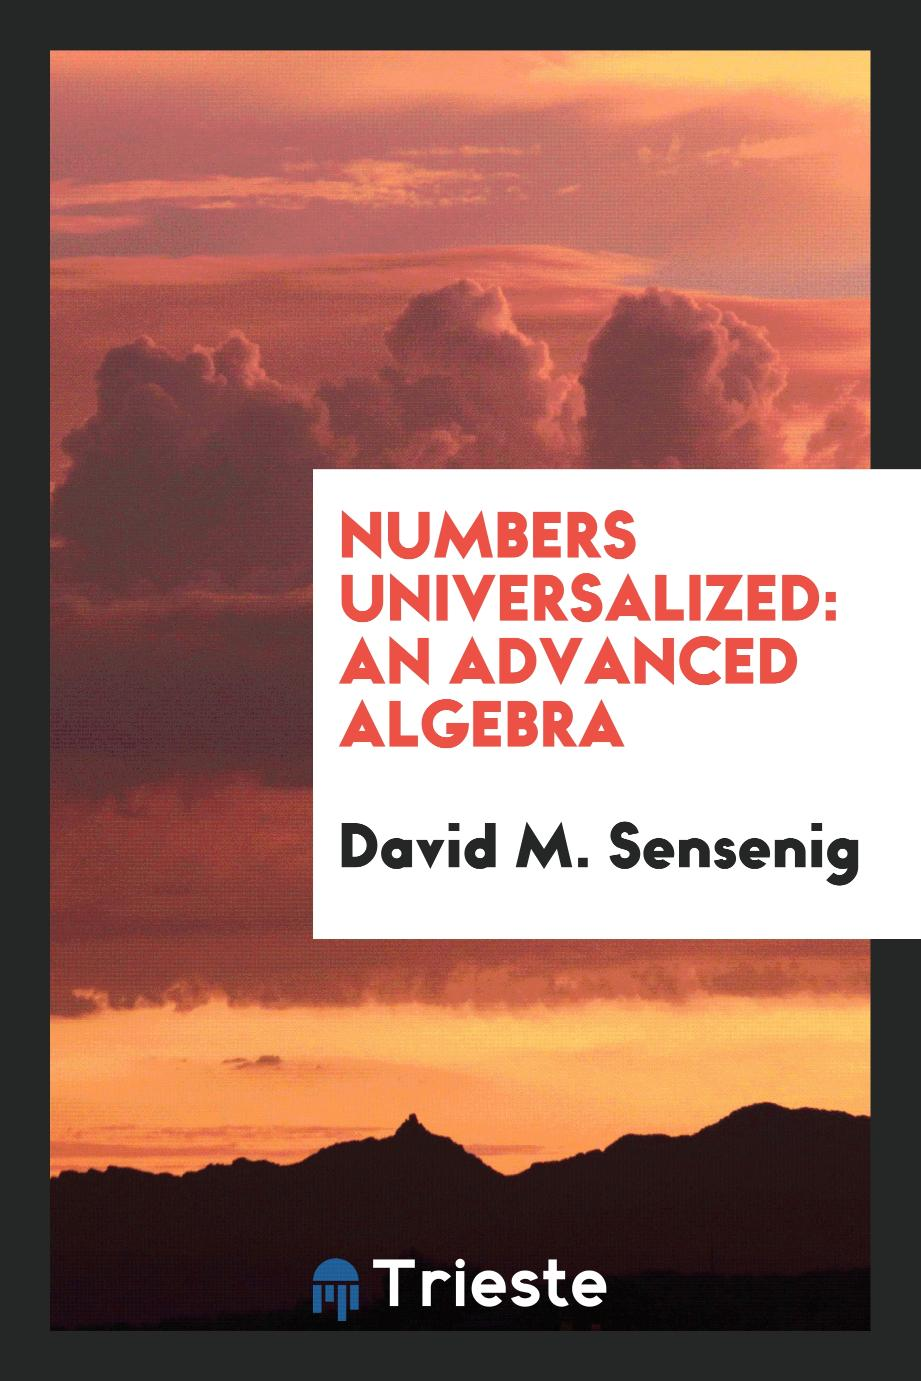 Numbers universalized: an advanced algebra